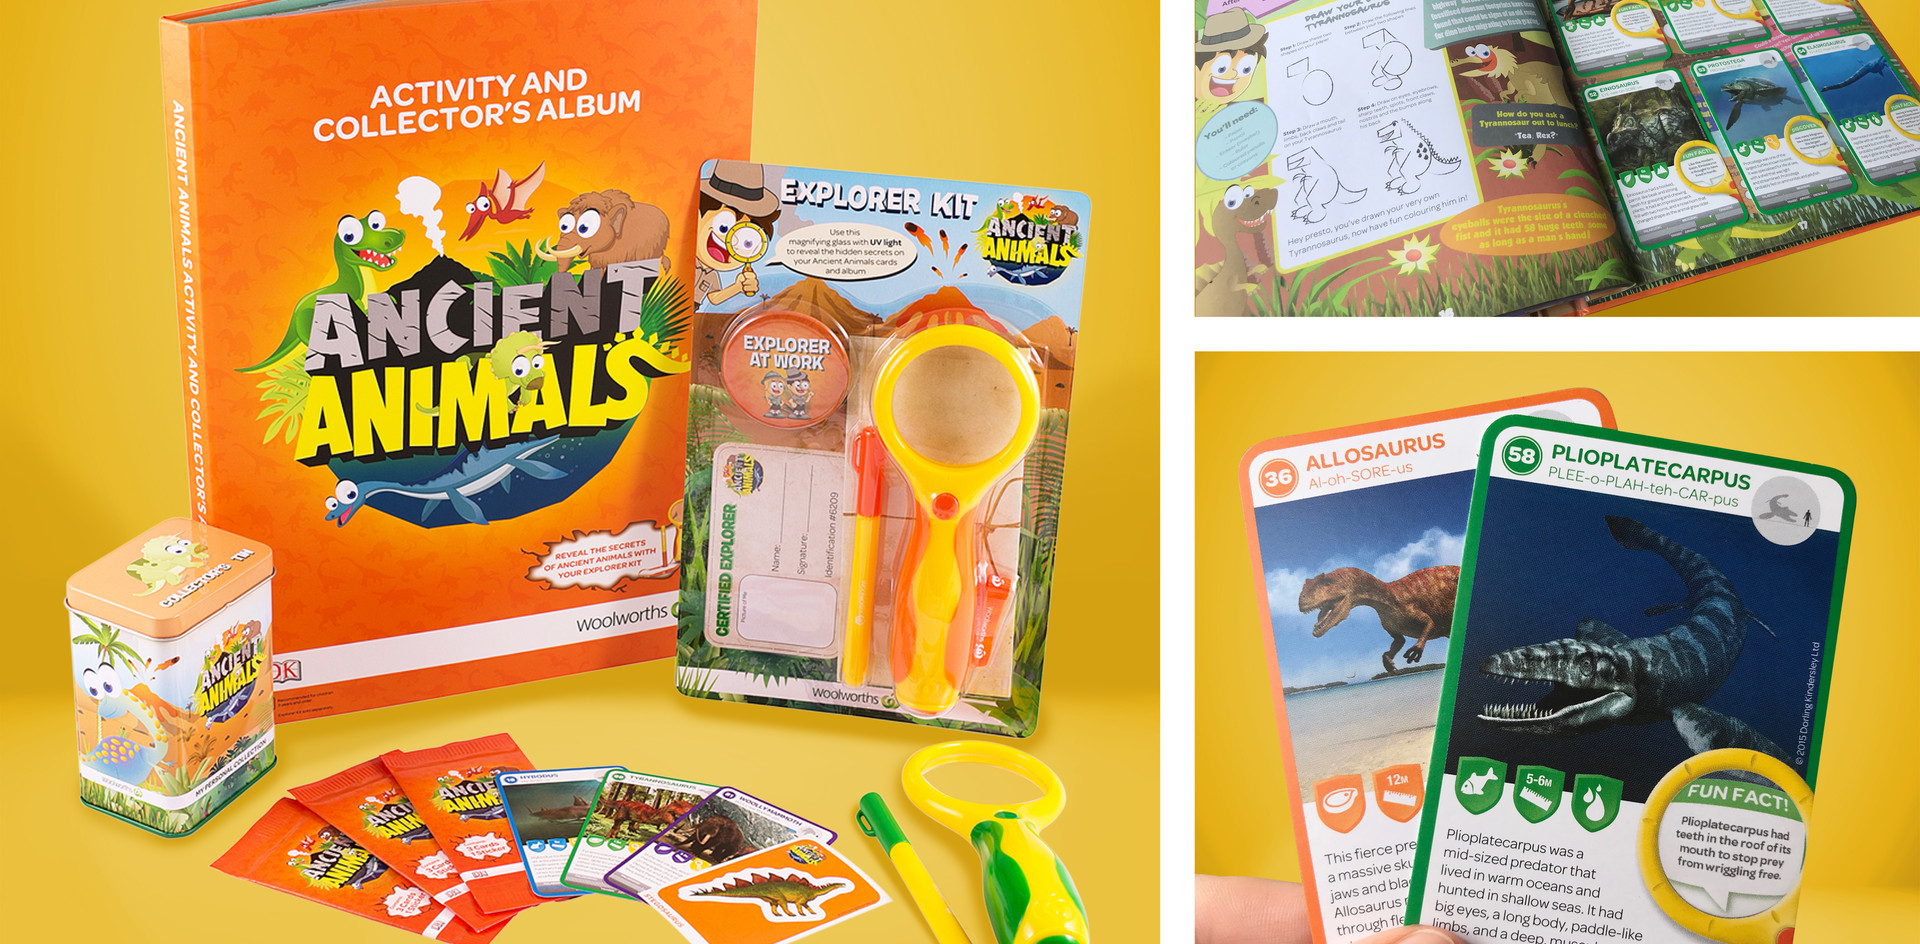 "Shop and collect kids programme ""Ancient Animals"" for Woolworths and Countdown. Includes collector cards and album, explorer kit, stickers, collector tin and associated packaging"